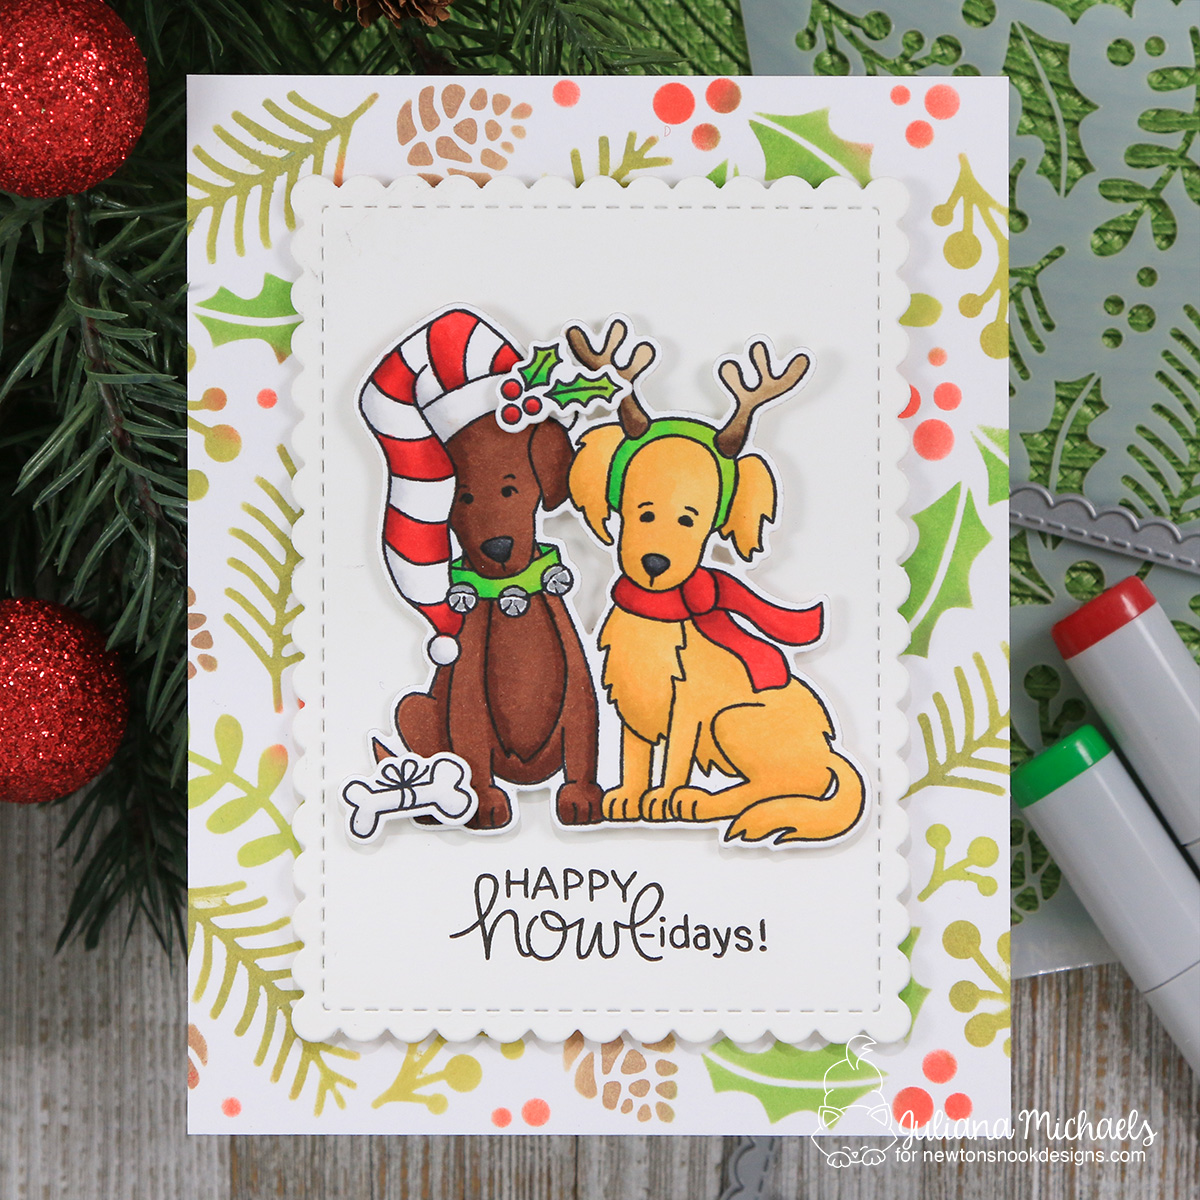 Newton's Nook Designs Holiday Release | Day 4 - 17turtles